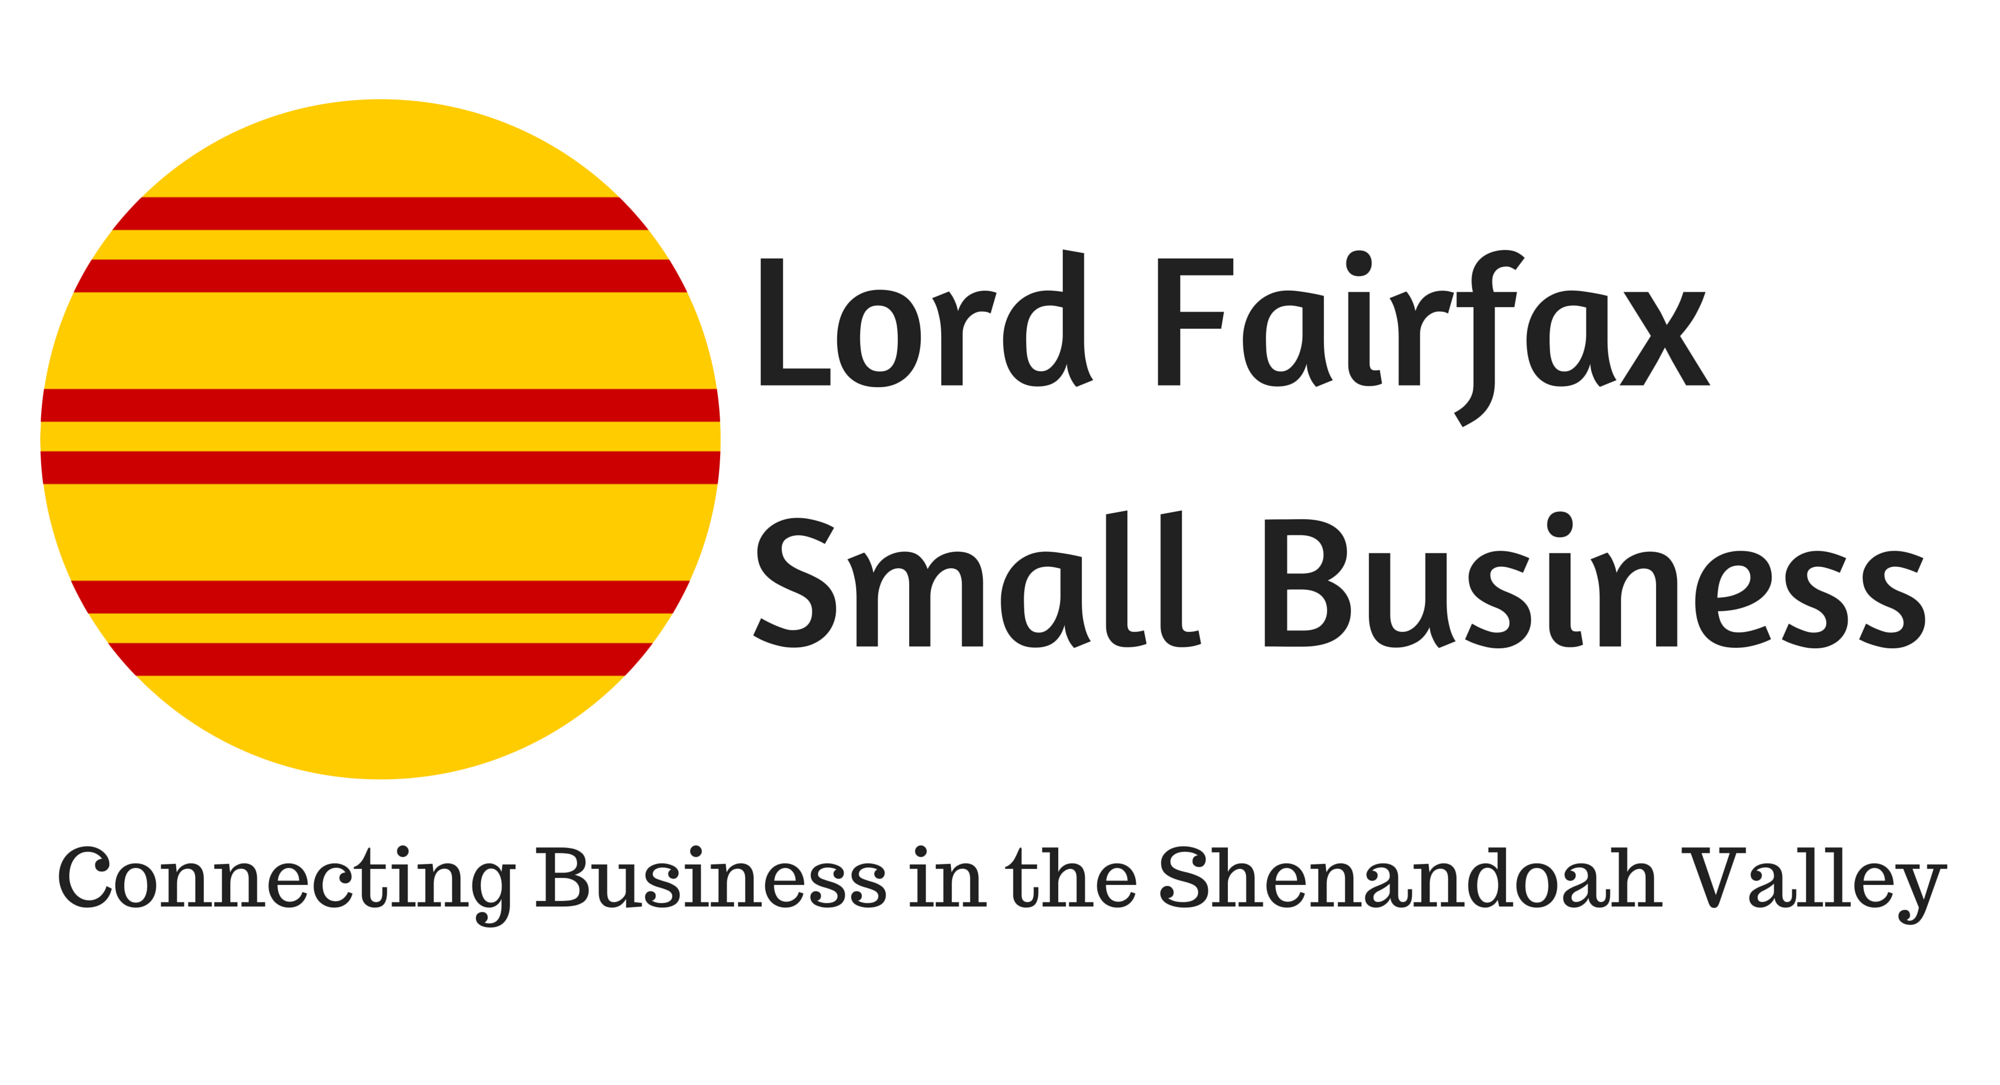 Lord Fairfax Small Business - Logo